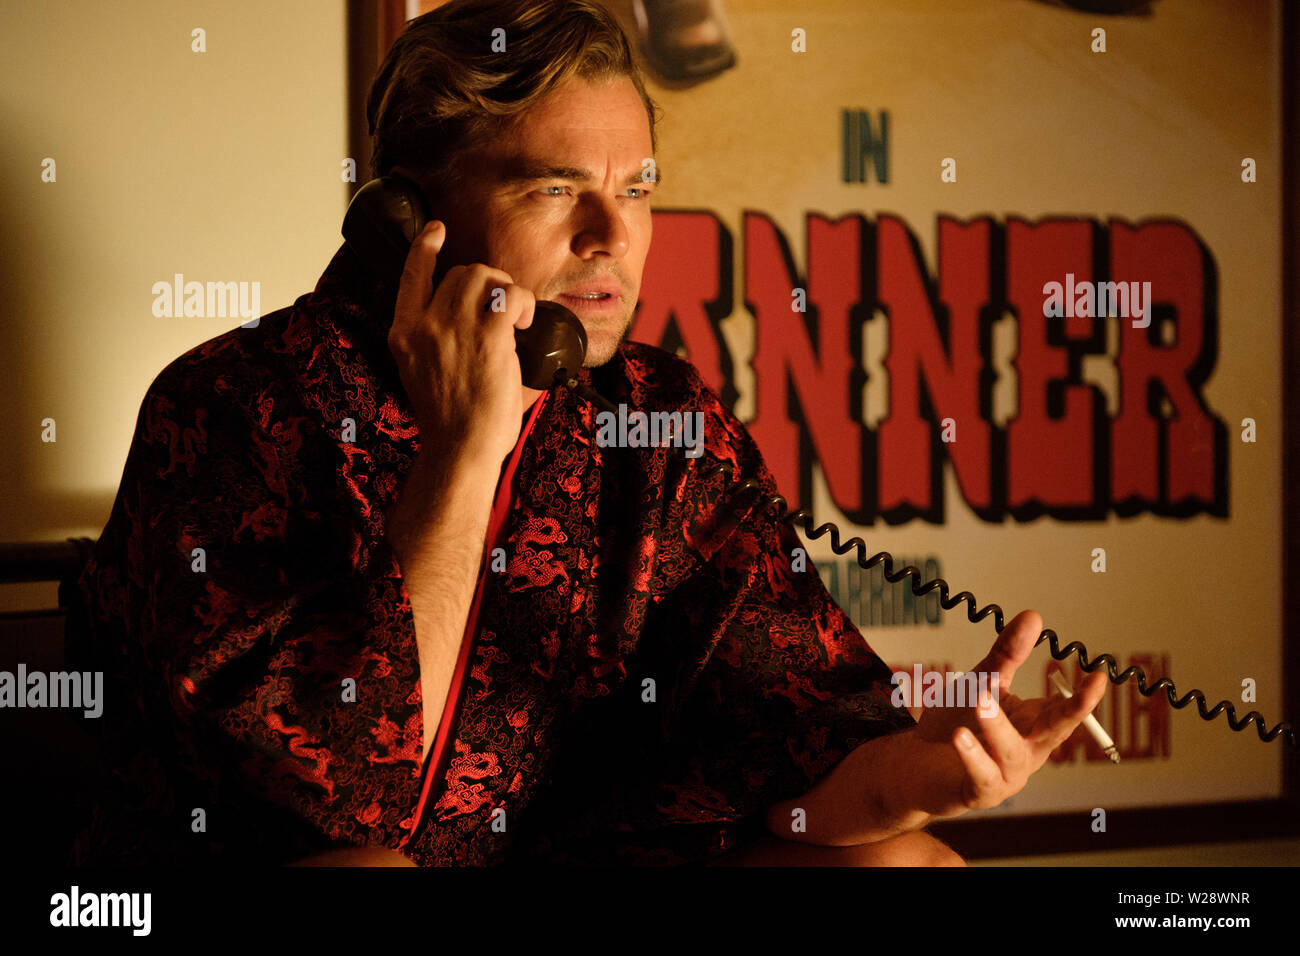 RELEASE DATE: August 9, 2019 TITLE: Once Upon a Time in Hollywood STUDIO: Columbia Pictures DIRECTOR: Quentin Tarantino PLOT: A TV actor and his stunt double embark on an odyssey to make a name for themselves in the film industry during the Charles Manson murders in 1969 Los Angeles. STARRING: LEONARDO DICAPRIO as Rick Dalton. (Credit Image: © Columbia Pictures/Entertainment Pictures) - Stock Image